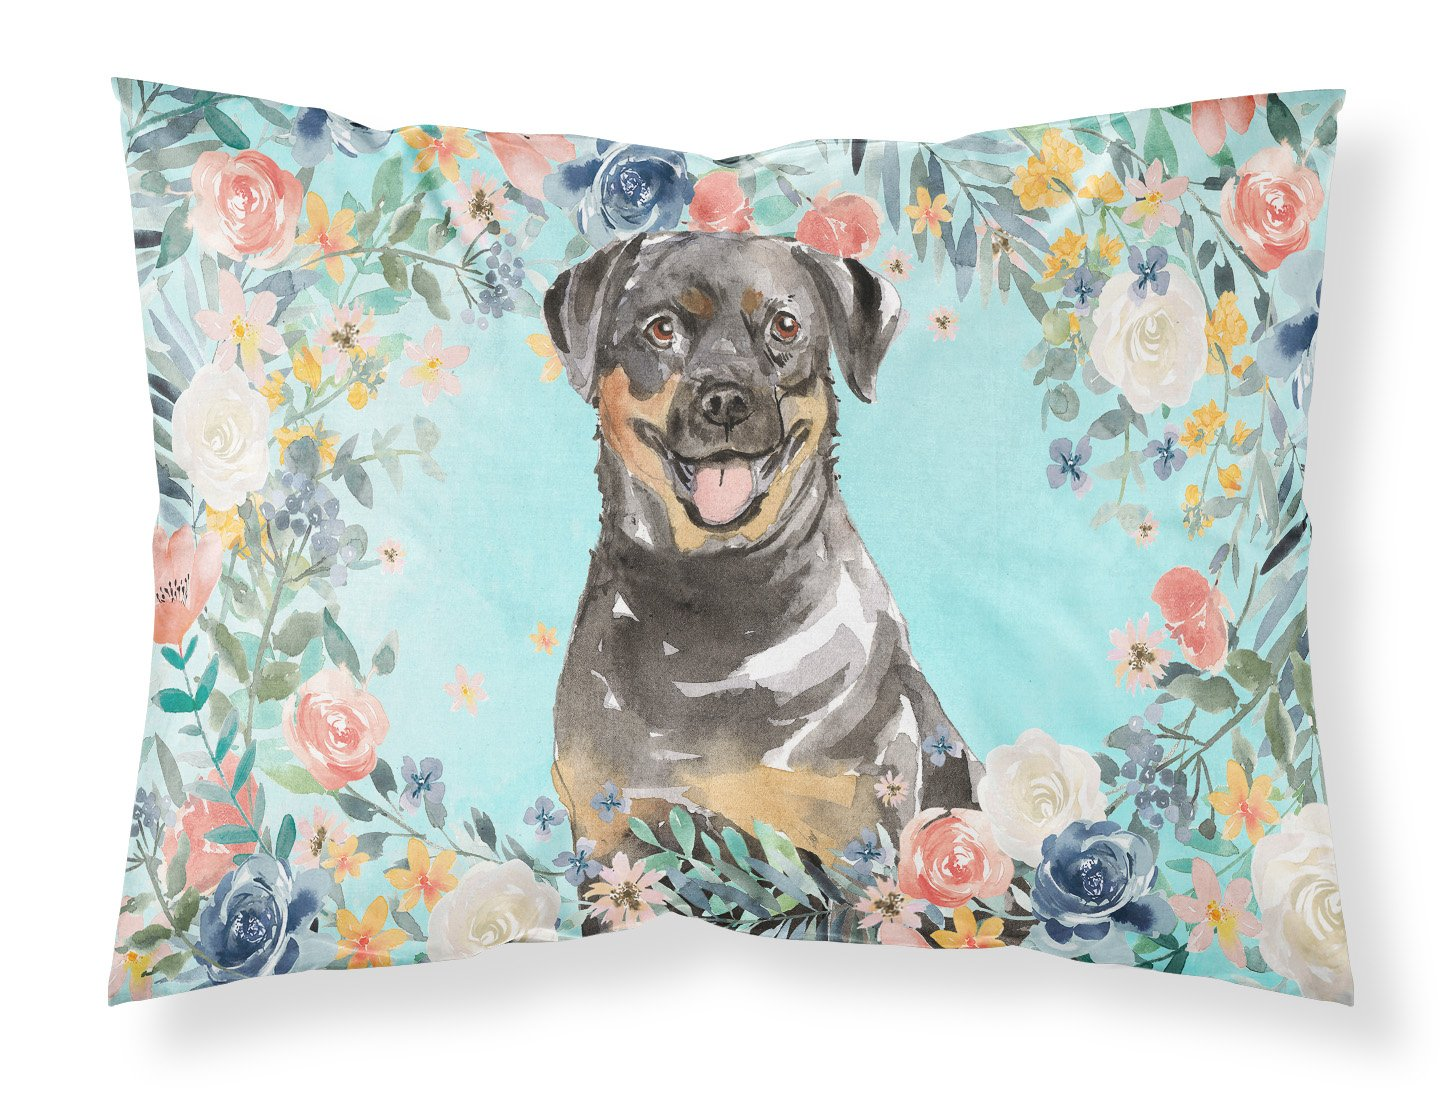 Buy this Rottweiler Fabric Standard Pillowcase CK3415PILLOWCASE